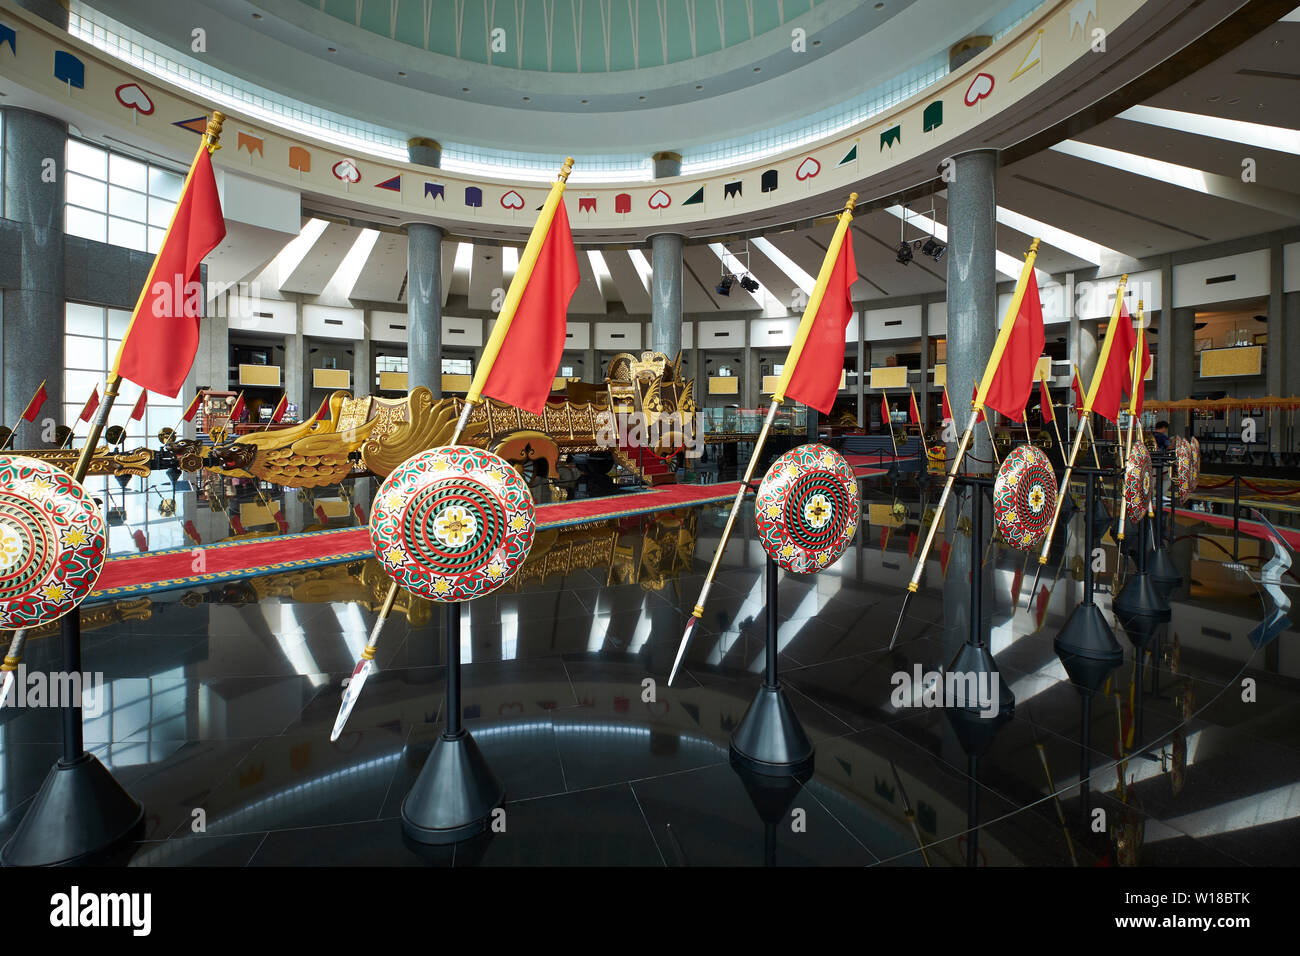 Interior view of the domed Royal Regalia Museum with ornate chariot in Bandar Seri Begawan, Brunei - Stock Image